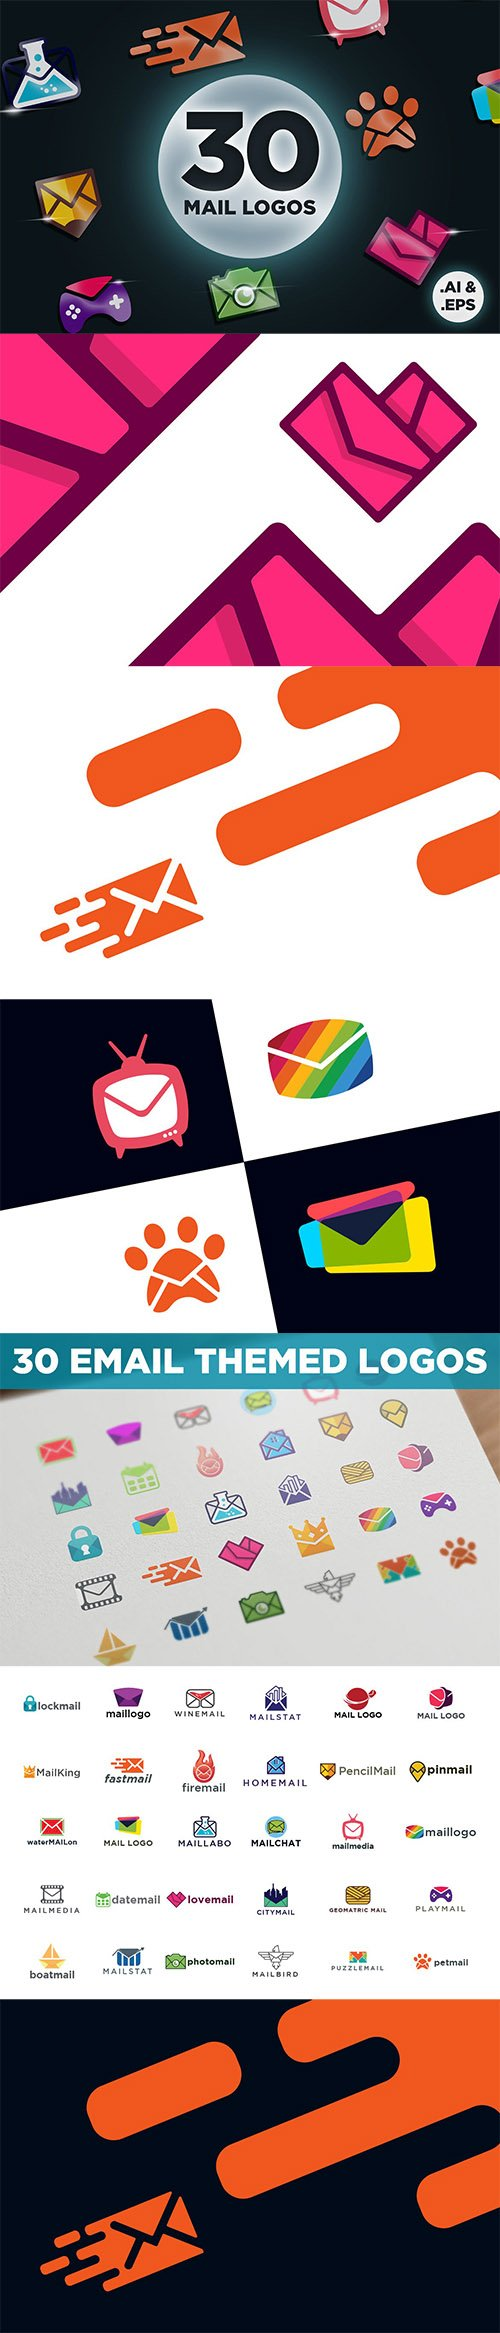 Modern Email and Mail Logos